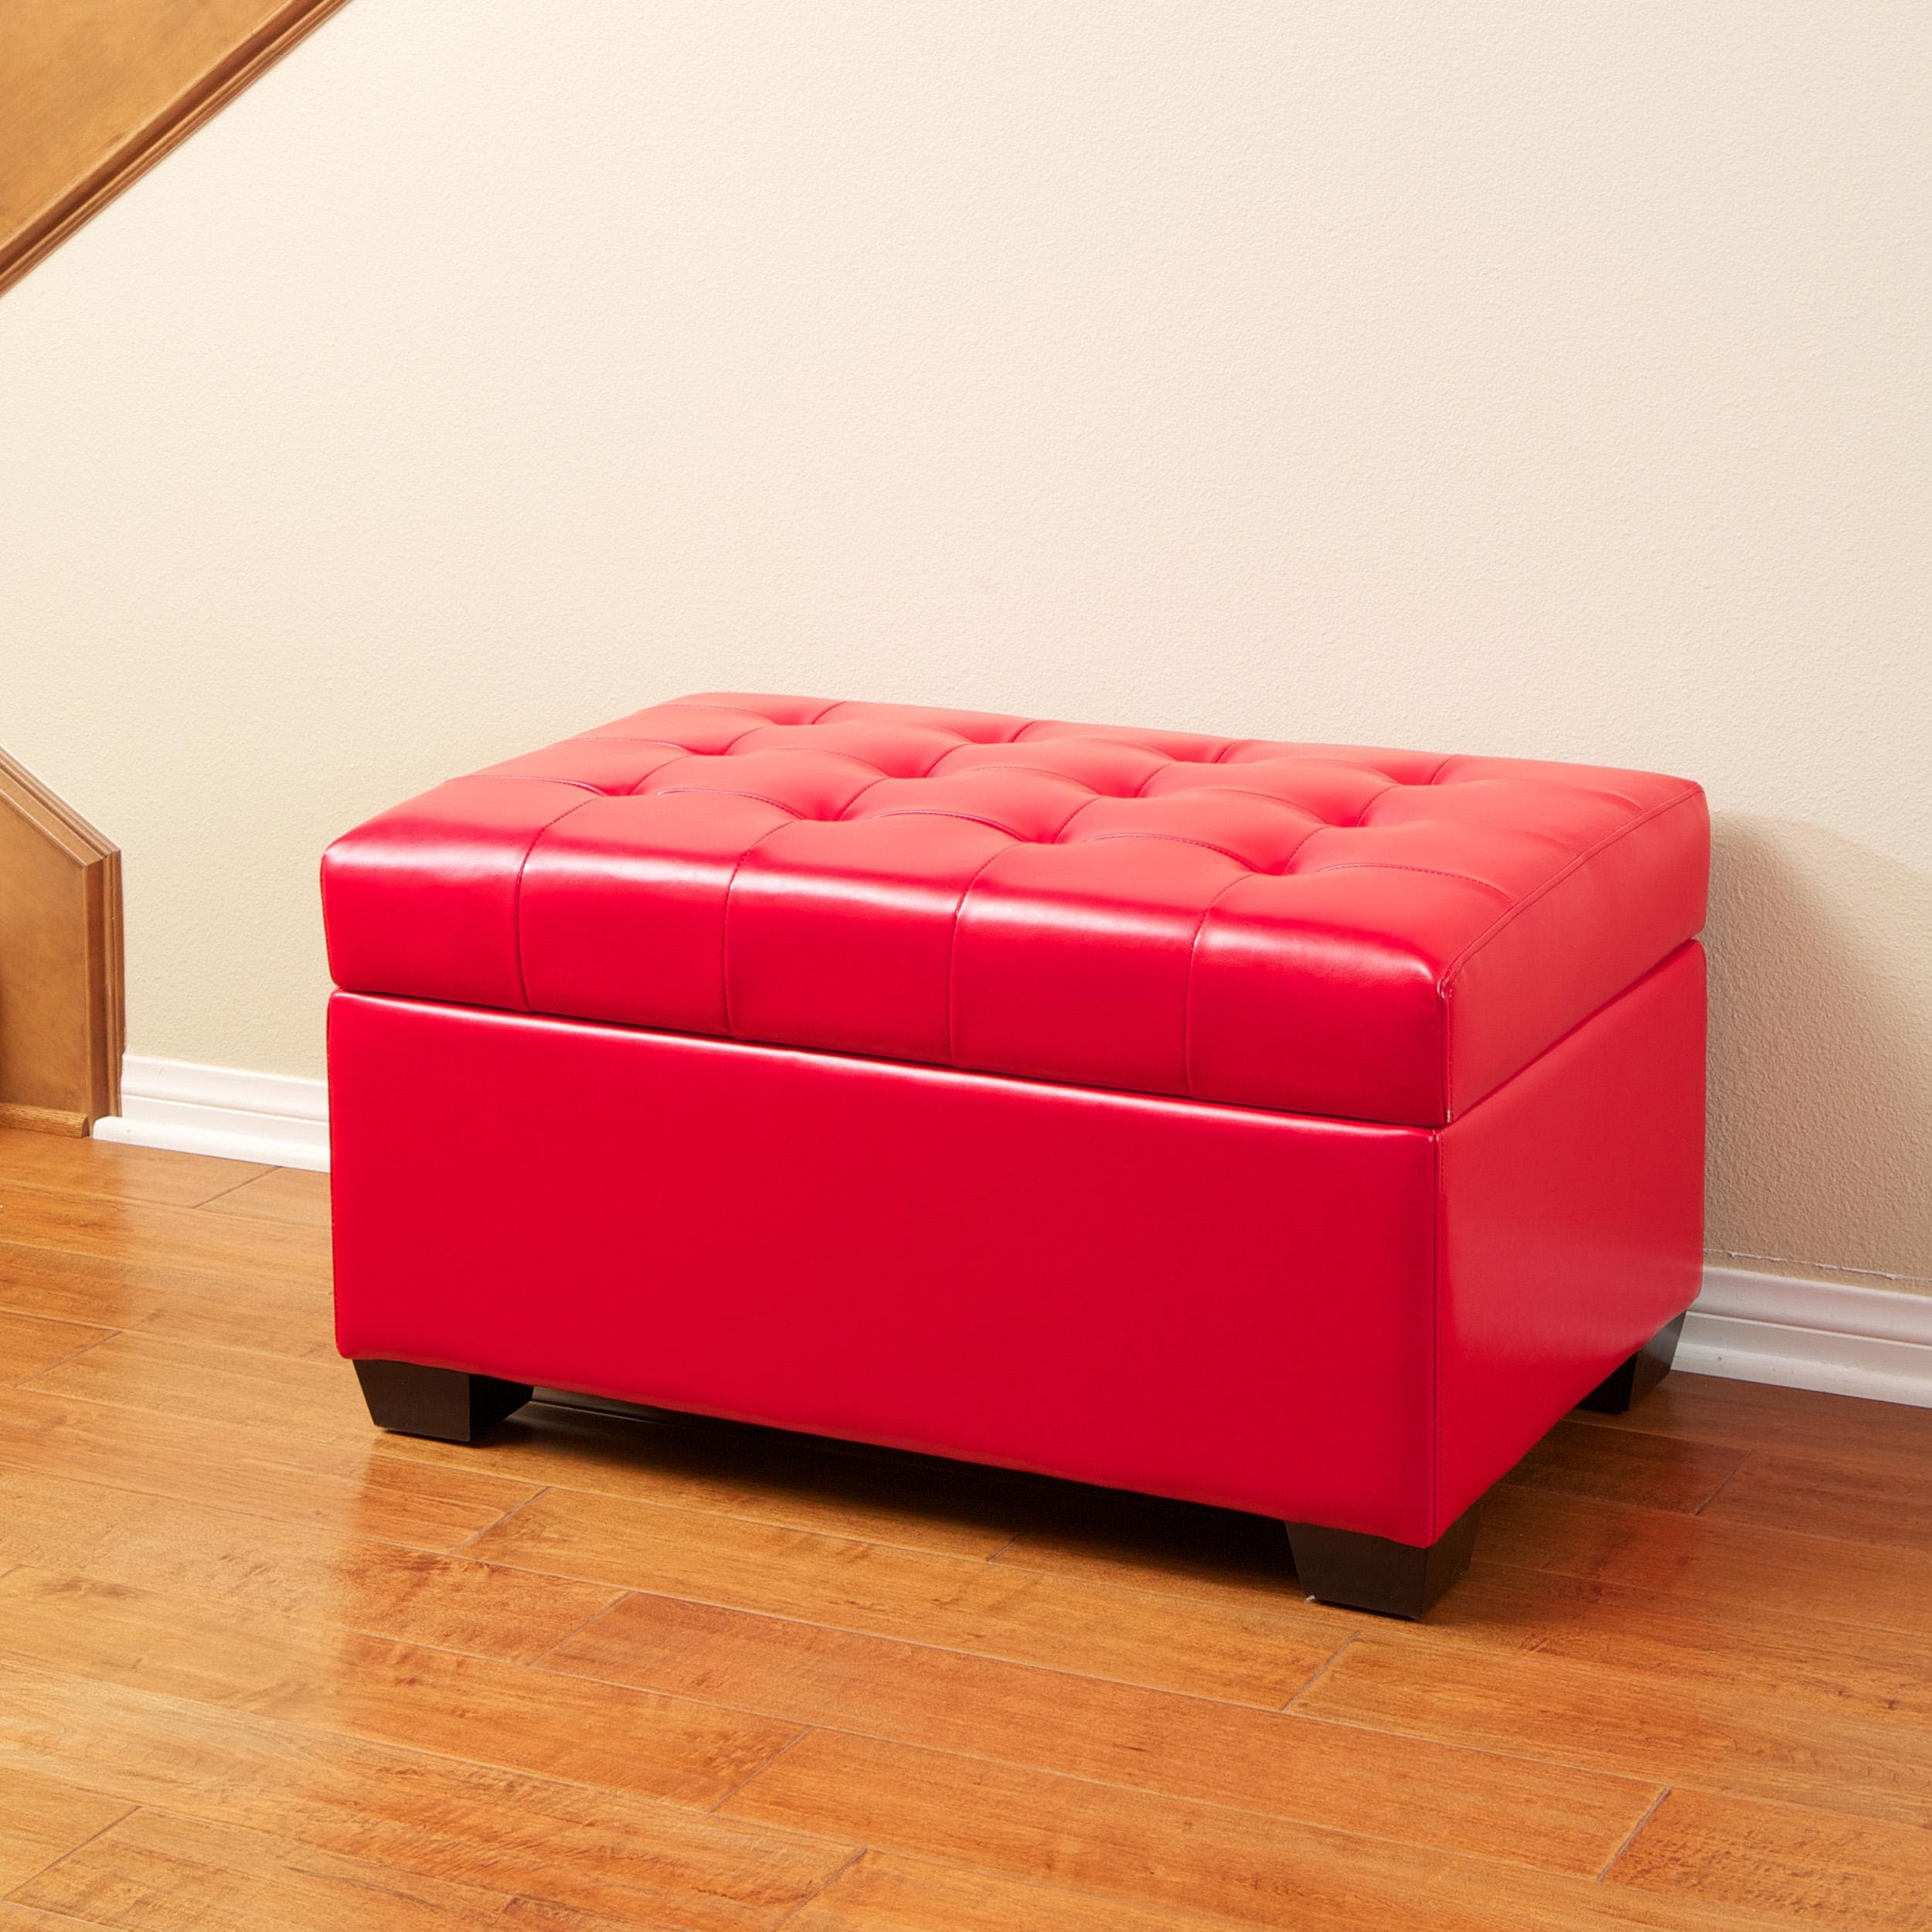 Christopher Knight Home Lima Red Bonded Leather Storage Ottoman